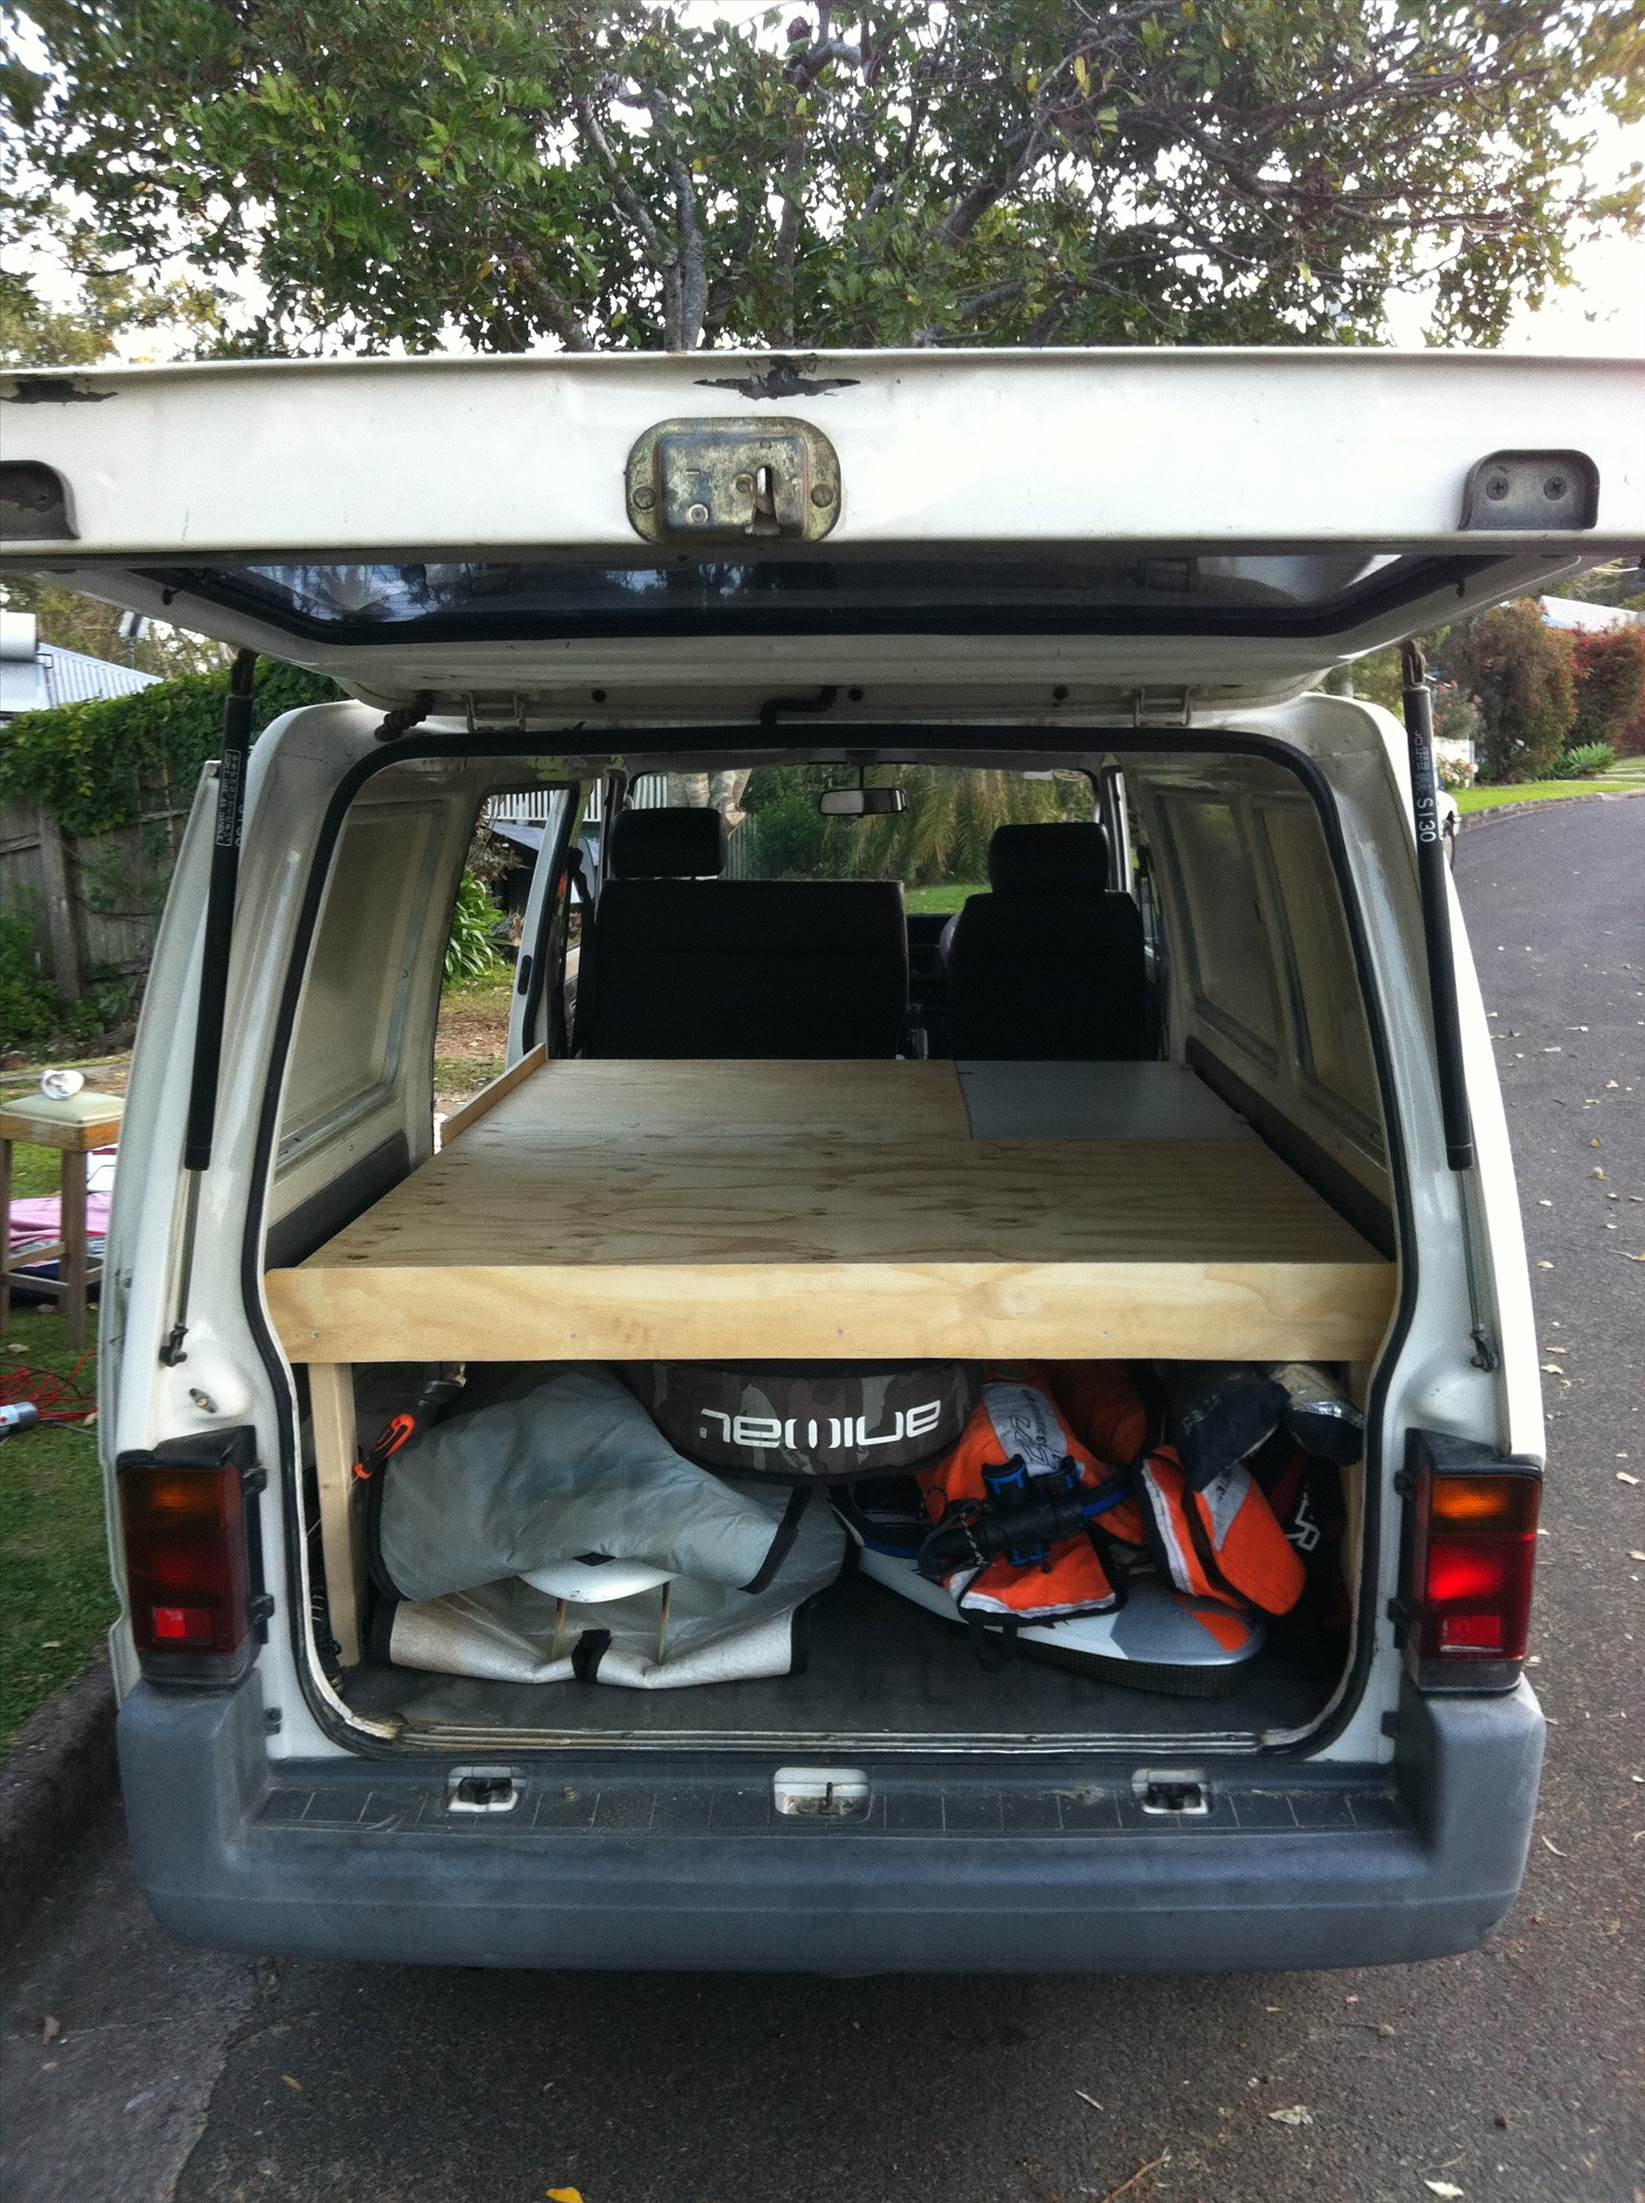 The Engine Room From Way Back: Wanted Van For Gear And Sleep